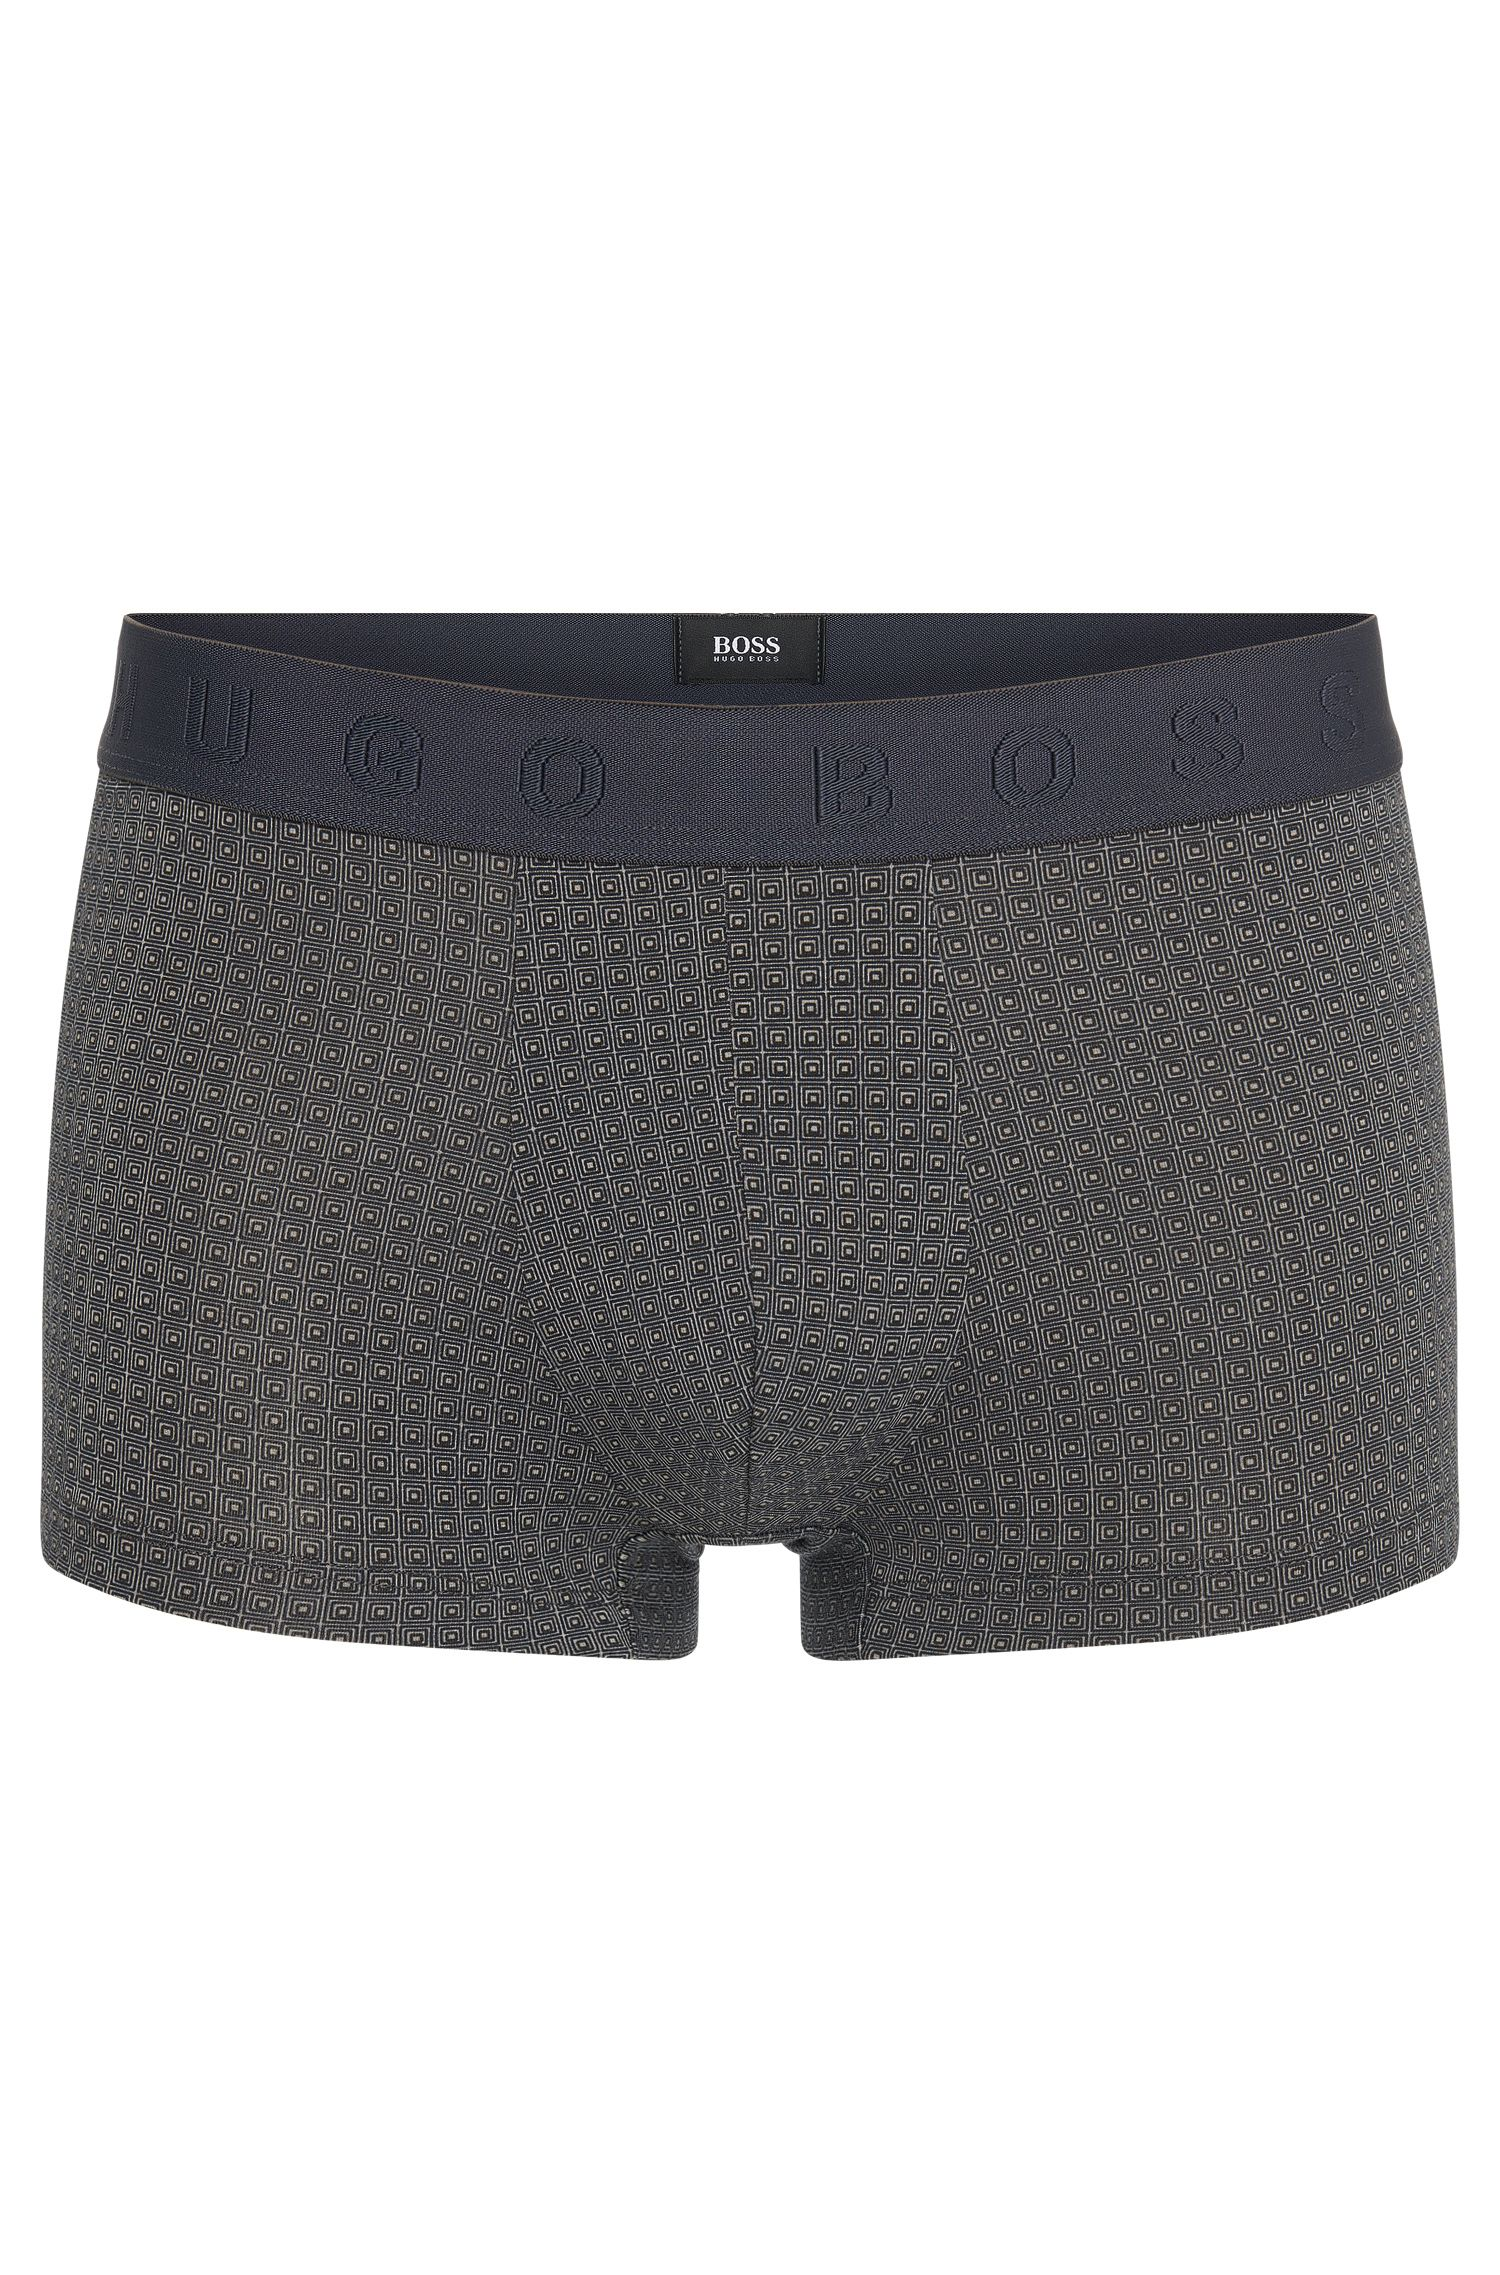 All-over patterned boxer shorts in a cotton blend with modal: 'Boxer Microprint'